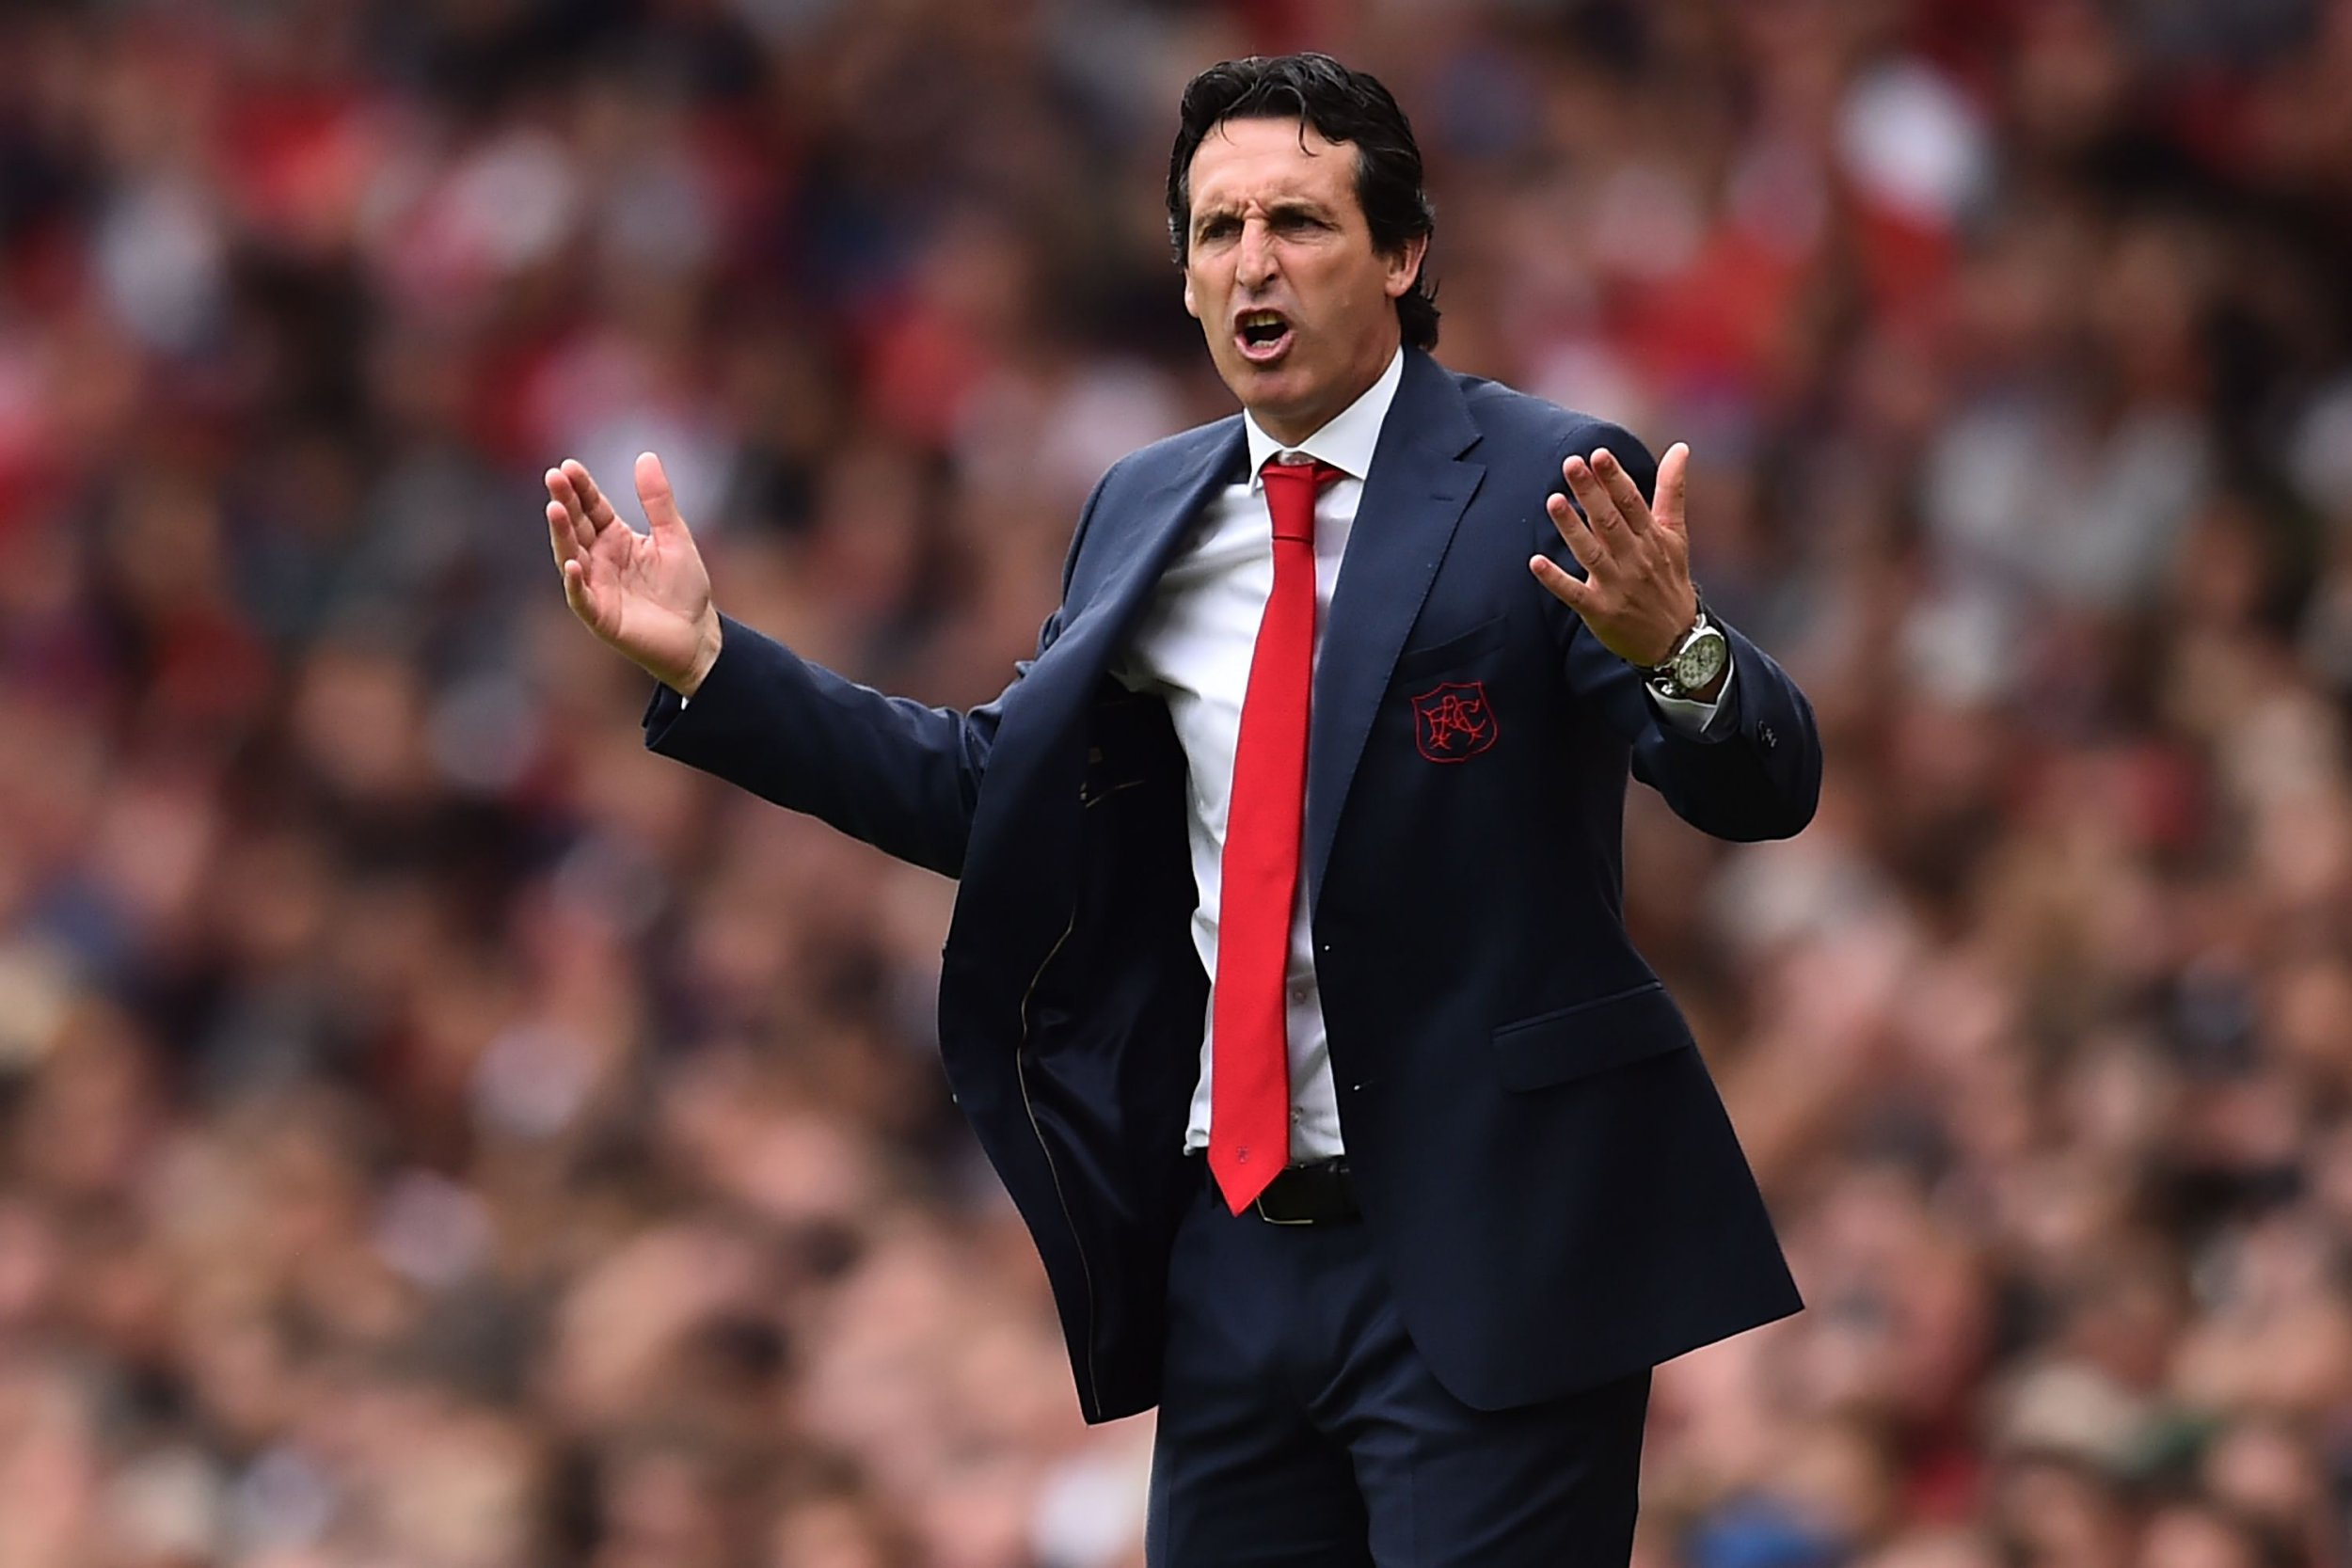 Arsenal's Spanish head coach Unai Emery gestures to Arsenal's German midfielder Mesut Ozil (L) on the touchline during the English Premier League football match between Arsenal and Manchester City at the Emirates Stadium in London on August 12, 2018. (Photo by Glyn KIRK / AFP) / RESTRICTED TO EDITORIAL USE. No use with unauthorized audio, video, data, fixture lists, club/league logos or 'live' services. Online in-match use limited to 120 images. An additional 40 images may be used in extra time. No video emulation. Social media in-match use limited to 120 images. An additional 40 images may be used in extra time. No use in betting publications, games or single club/league/player publications. / GLYN KIRK/AFP/Getty Images